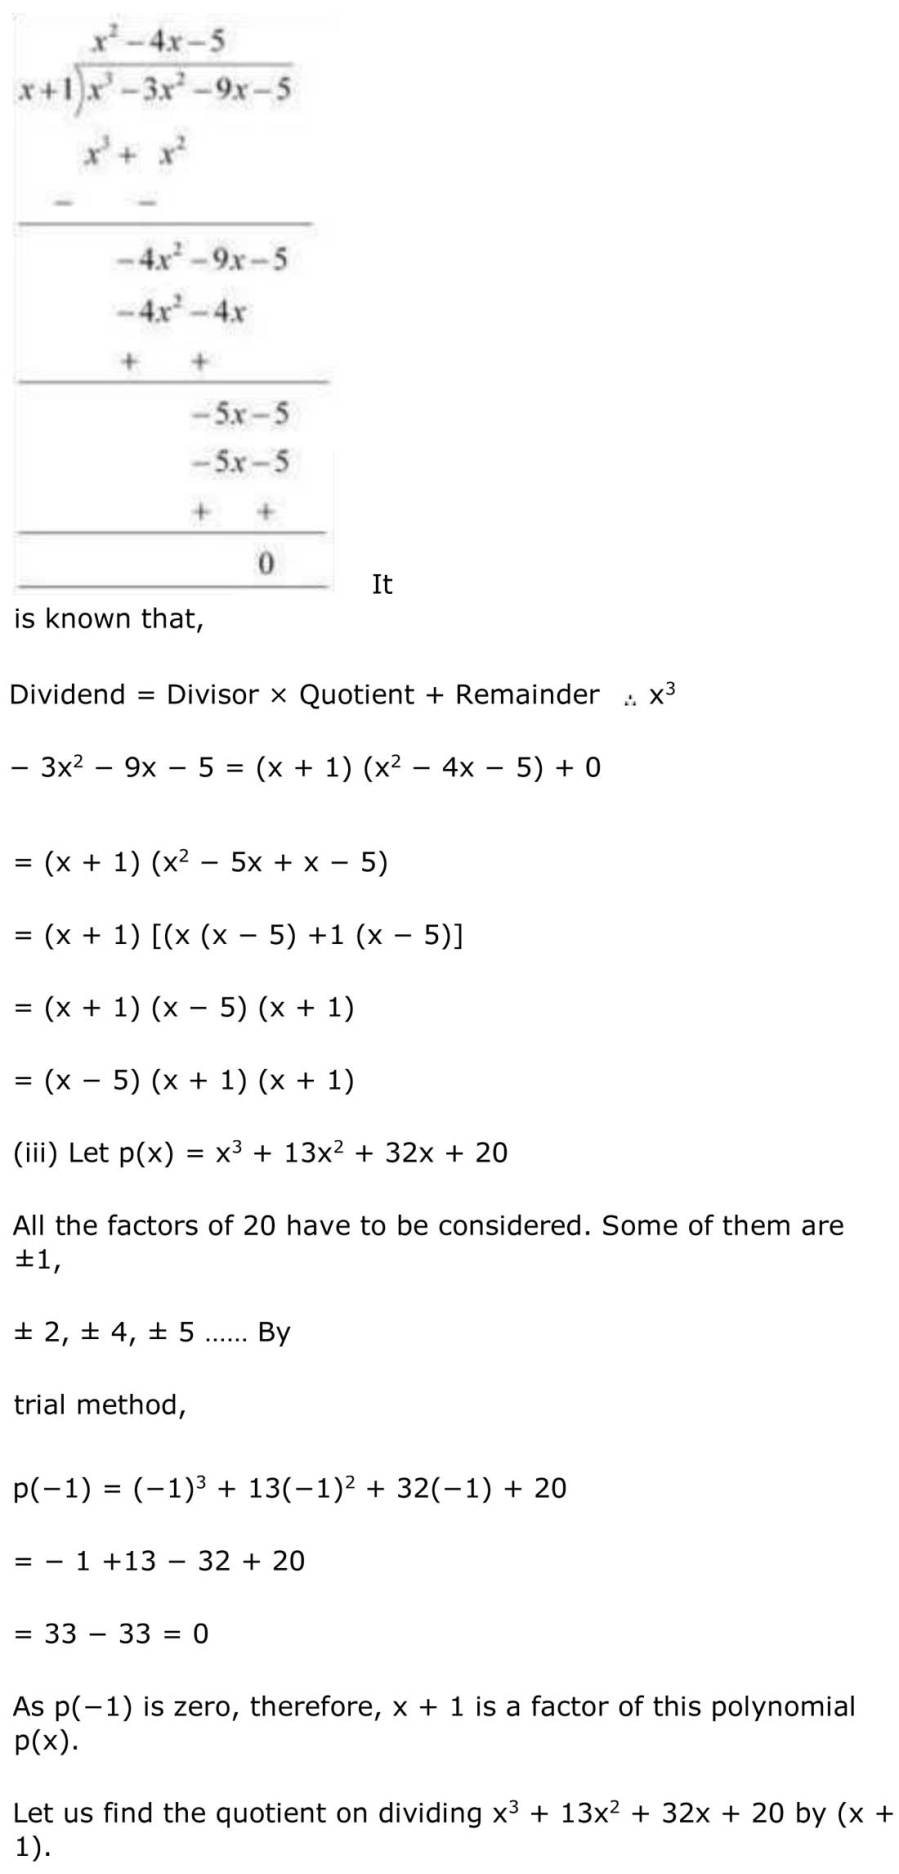 ncert solutions for class 9 maths chapter 2 polynomial 26